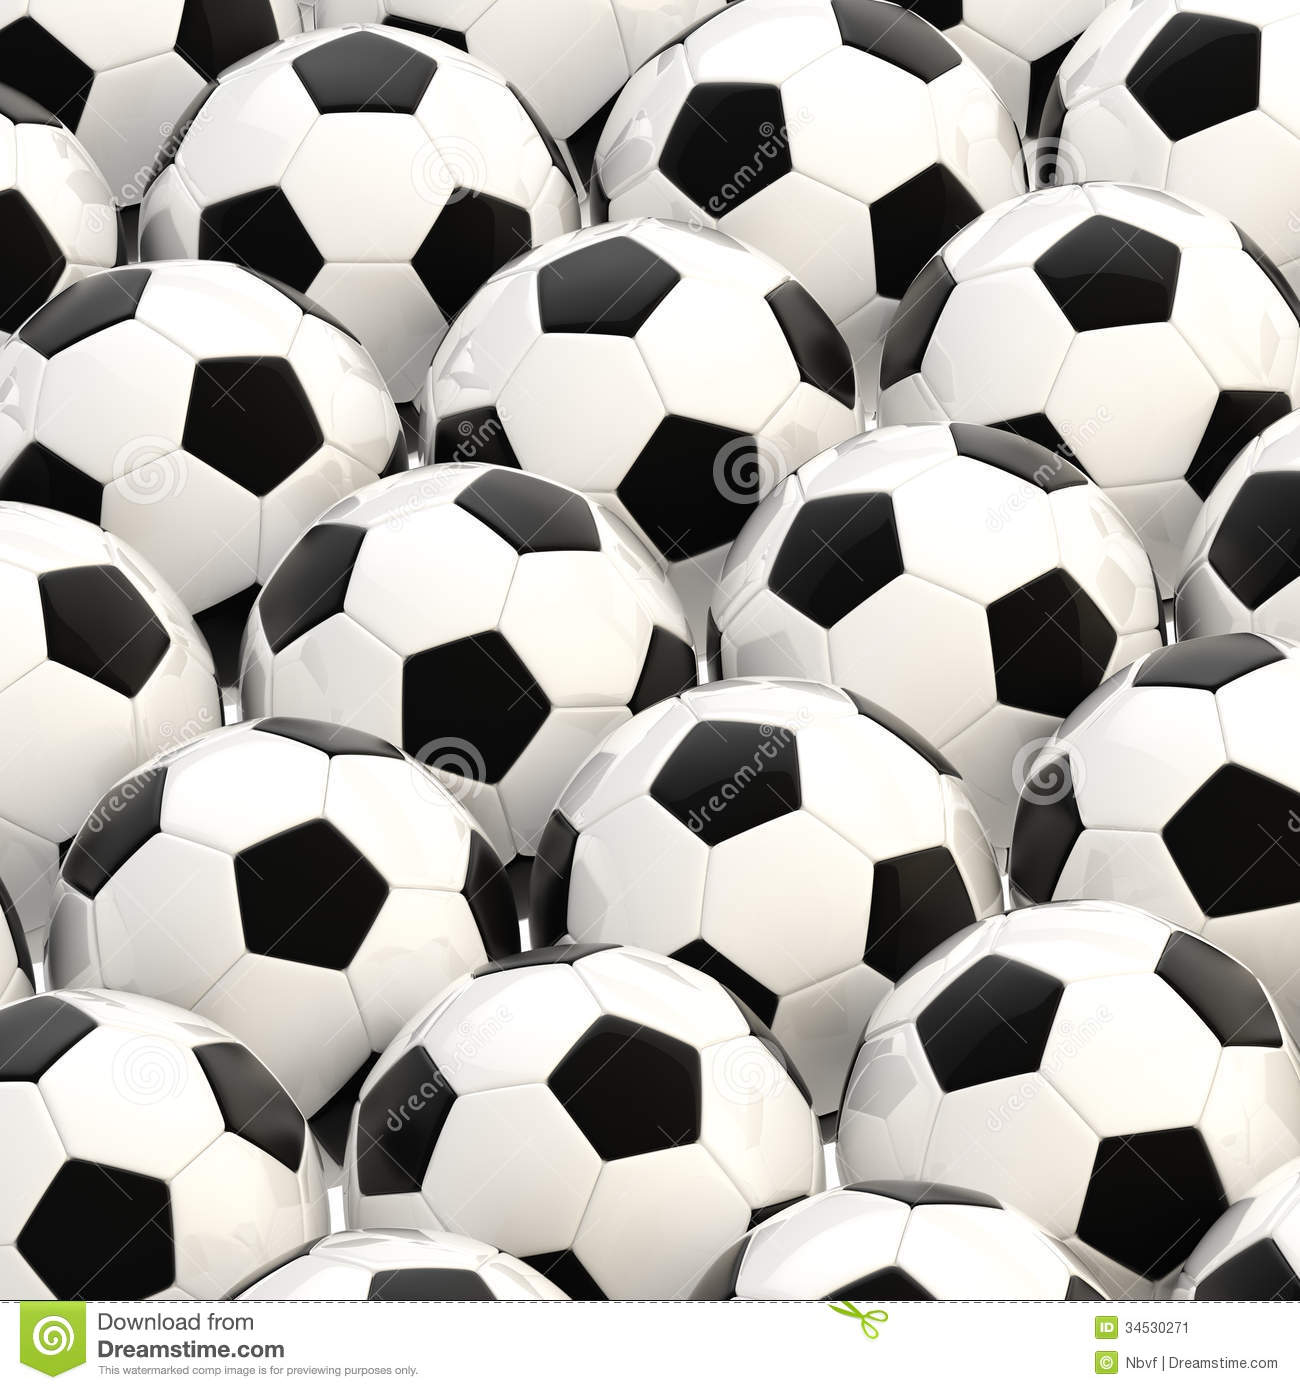 Pile Of Football Balls As A Background Stock Image - Image: 34530271